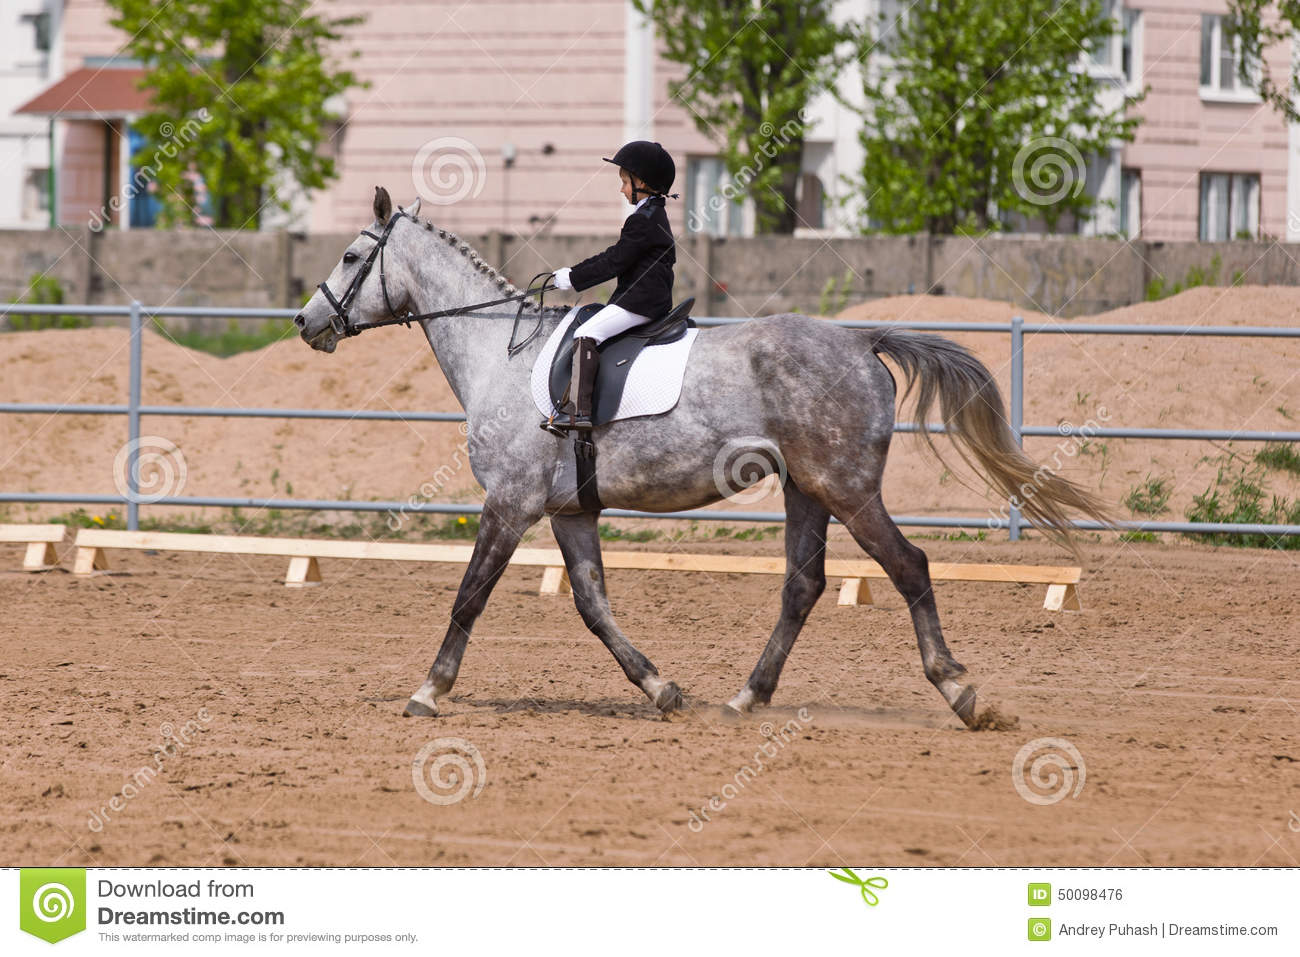 Little girl riding a horse participates in competitions. Summer countryside.